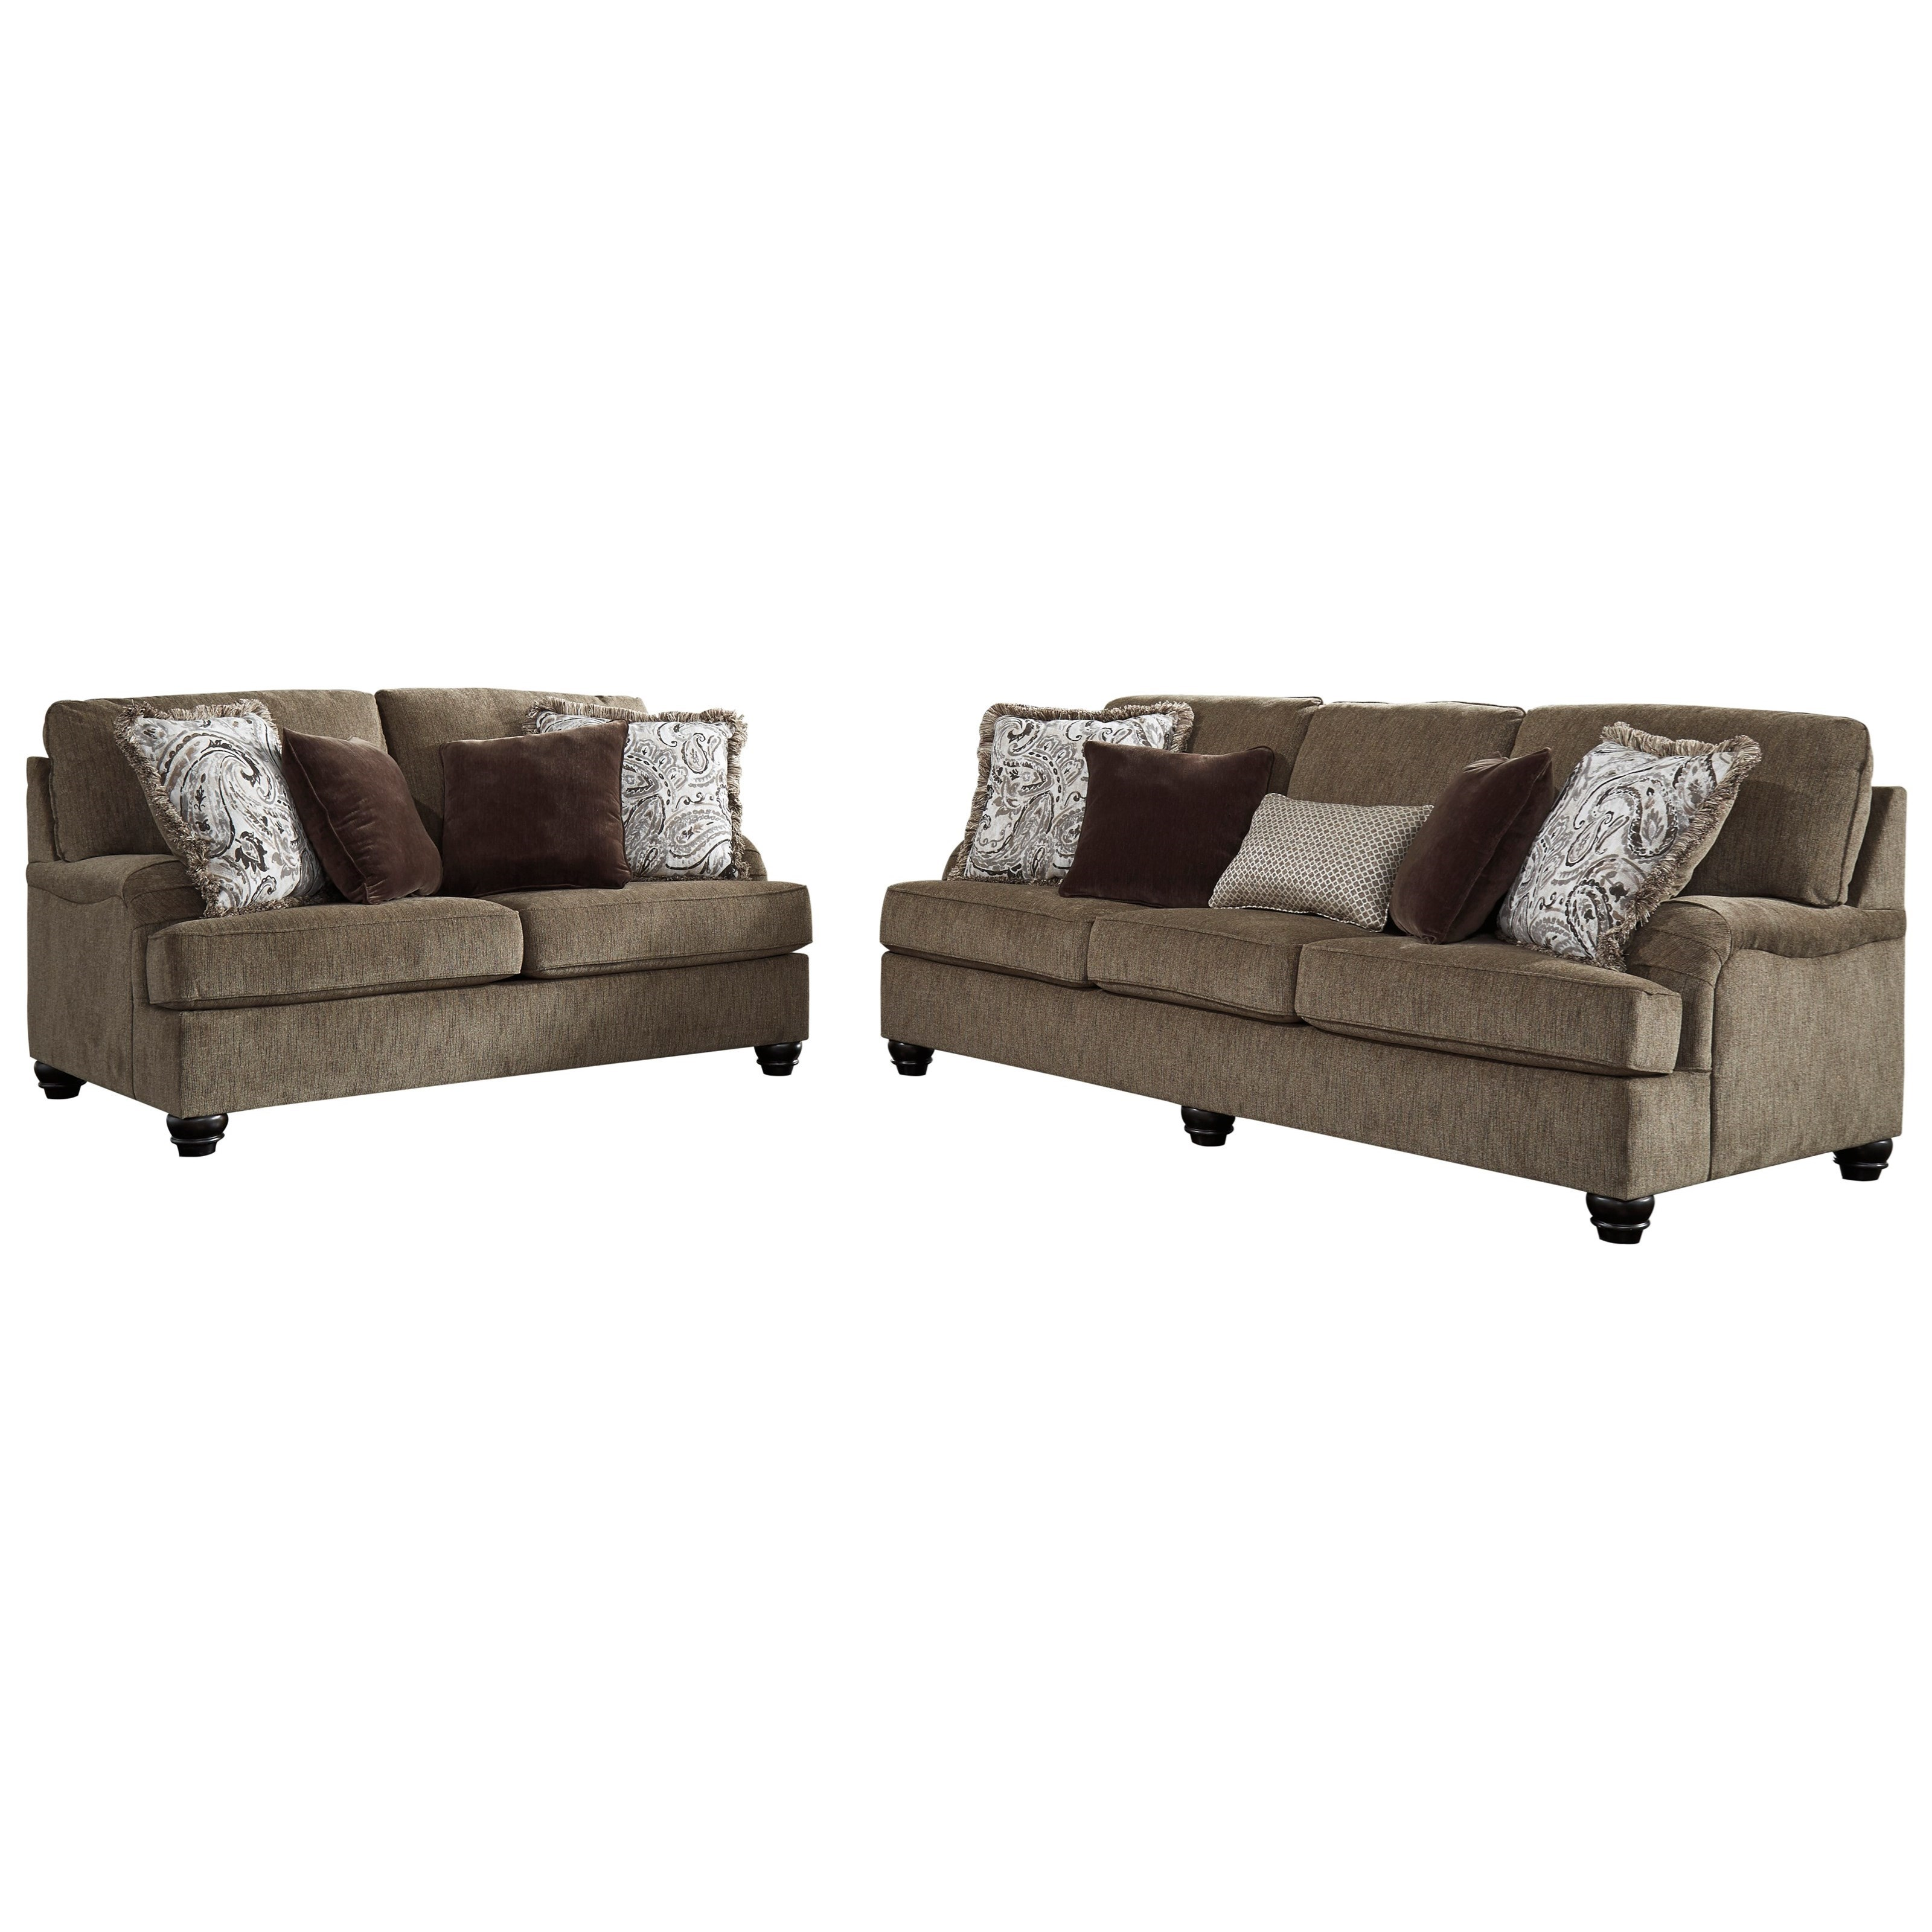 Braemar Stationary Living Room Group by Benchcraft at Zak's Warehouse Clearance Center